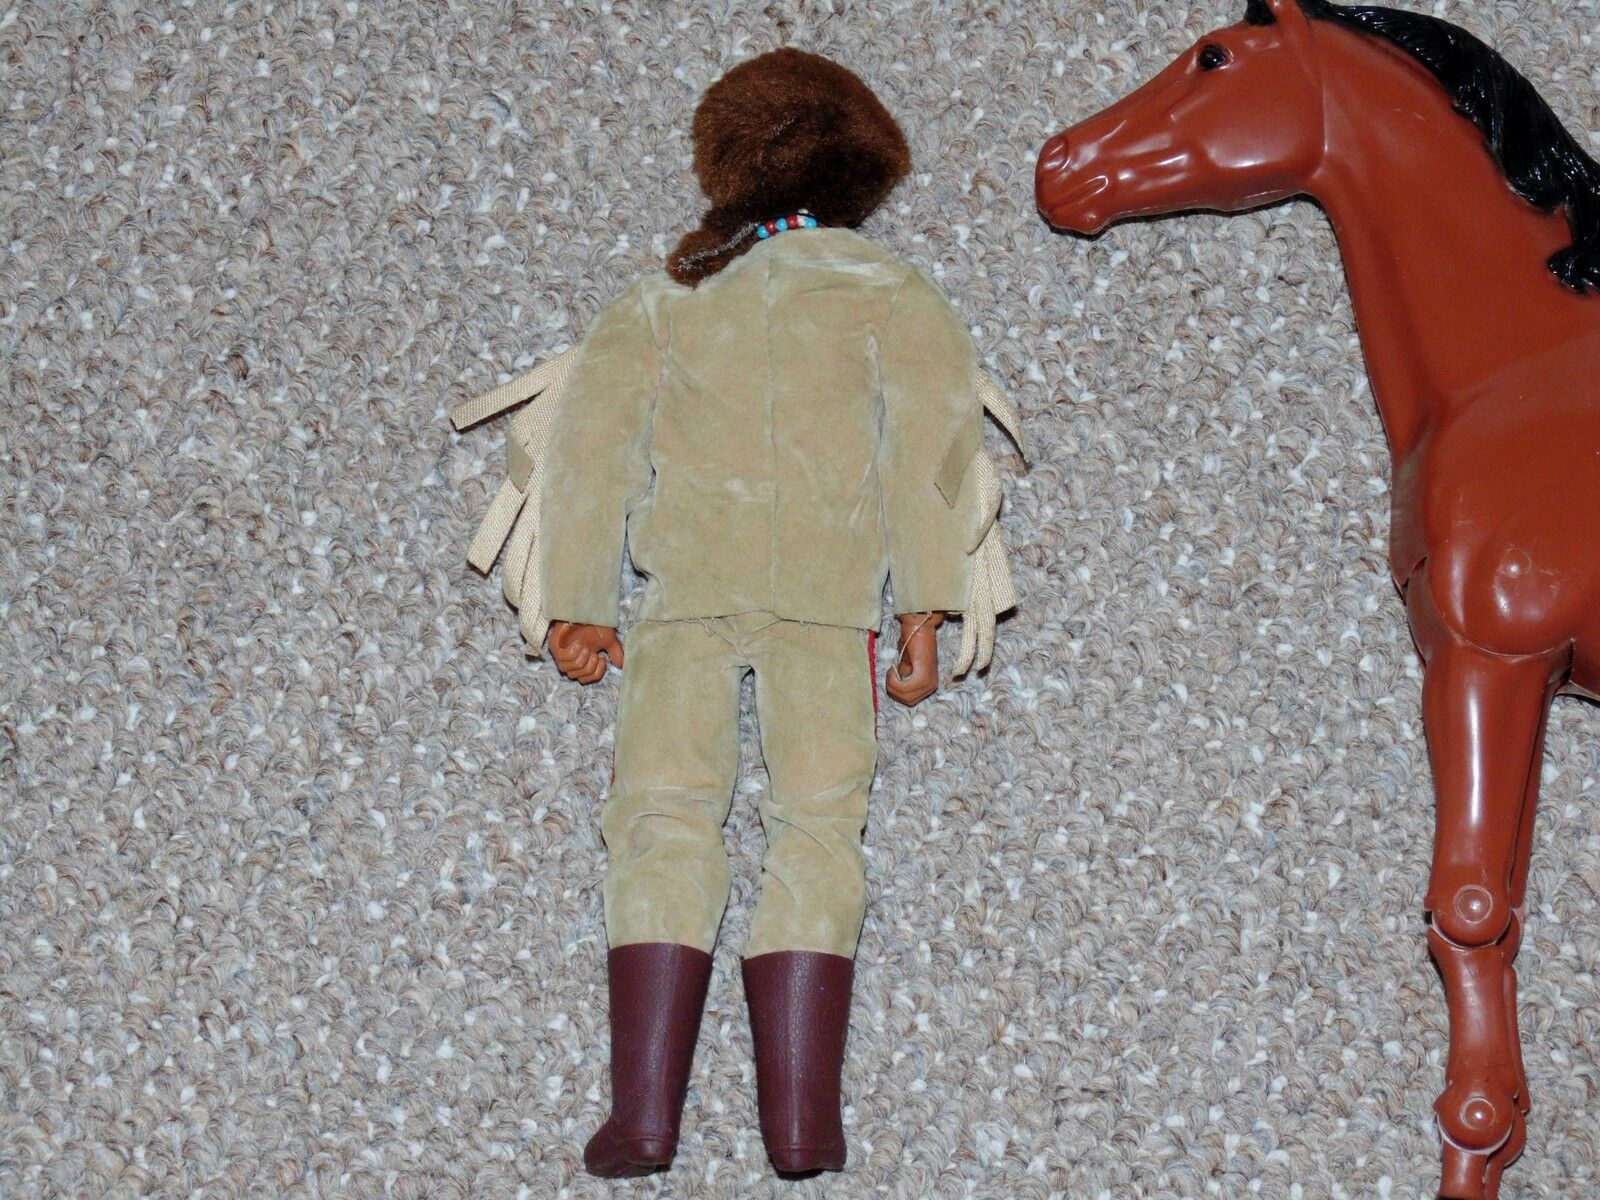 1970s Big Jim Karl May Old Old Old Firehand with Articulated Horse Figure Lot a6b10c